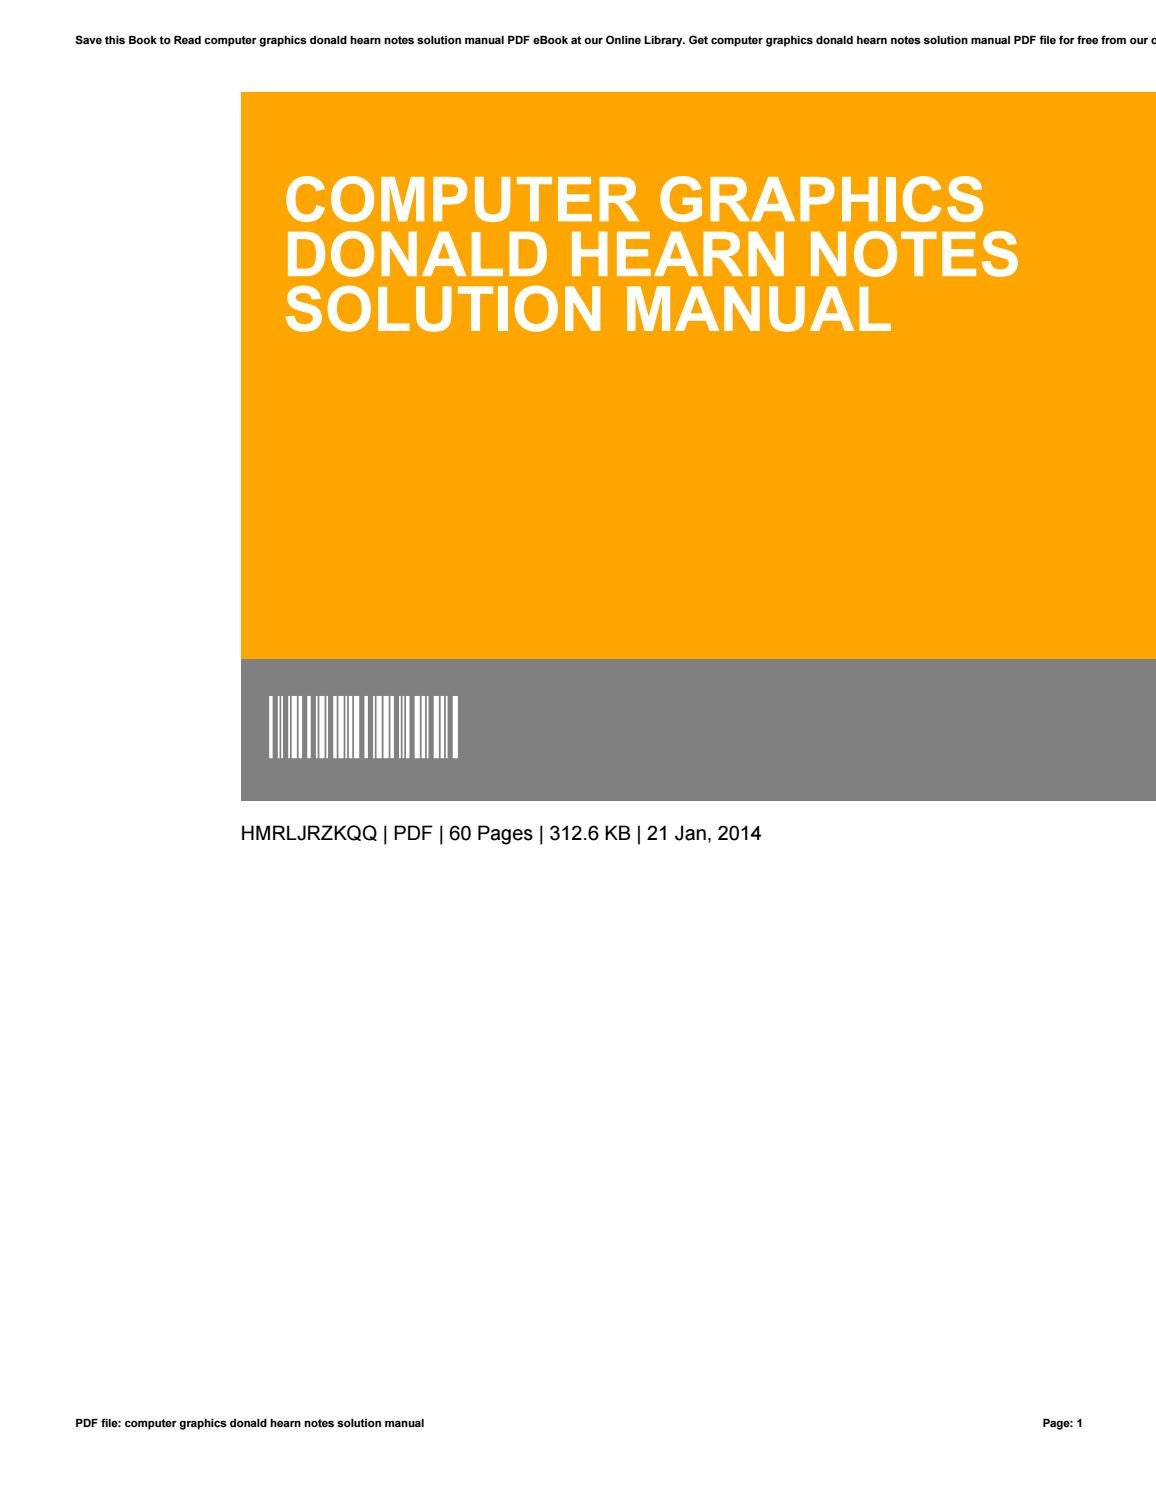 Computer graphics donald hearn notes solution manual by noer65janah - issuu